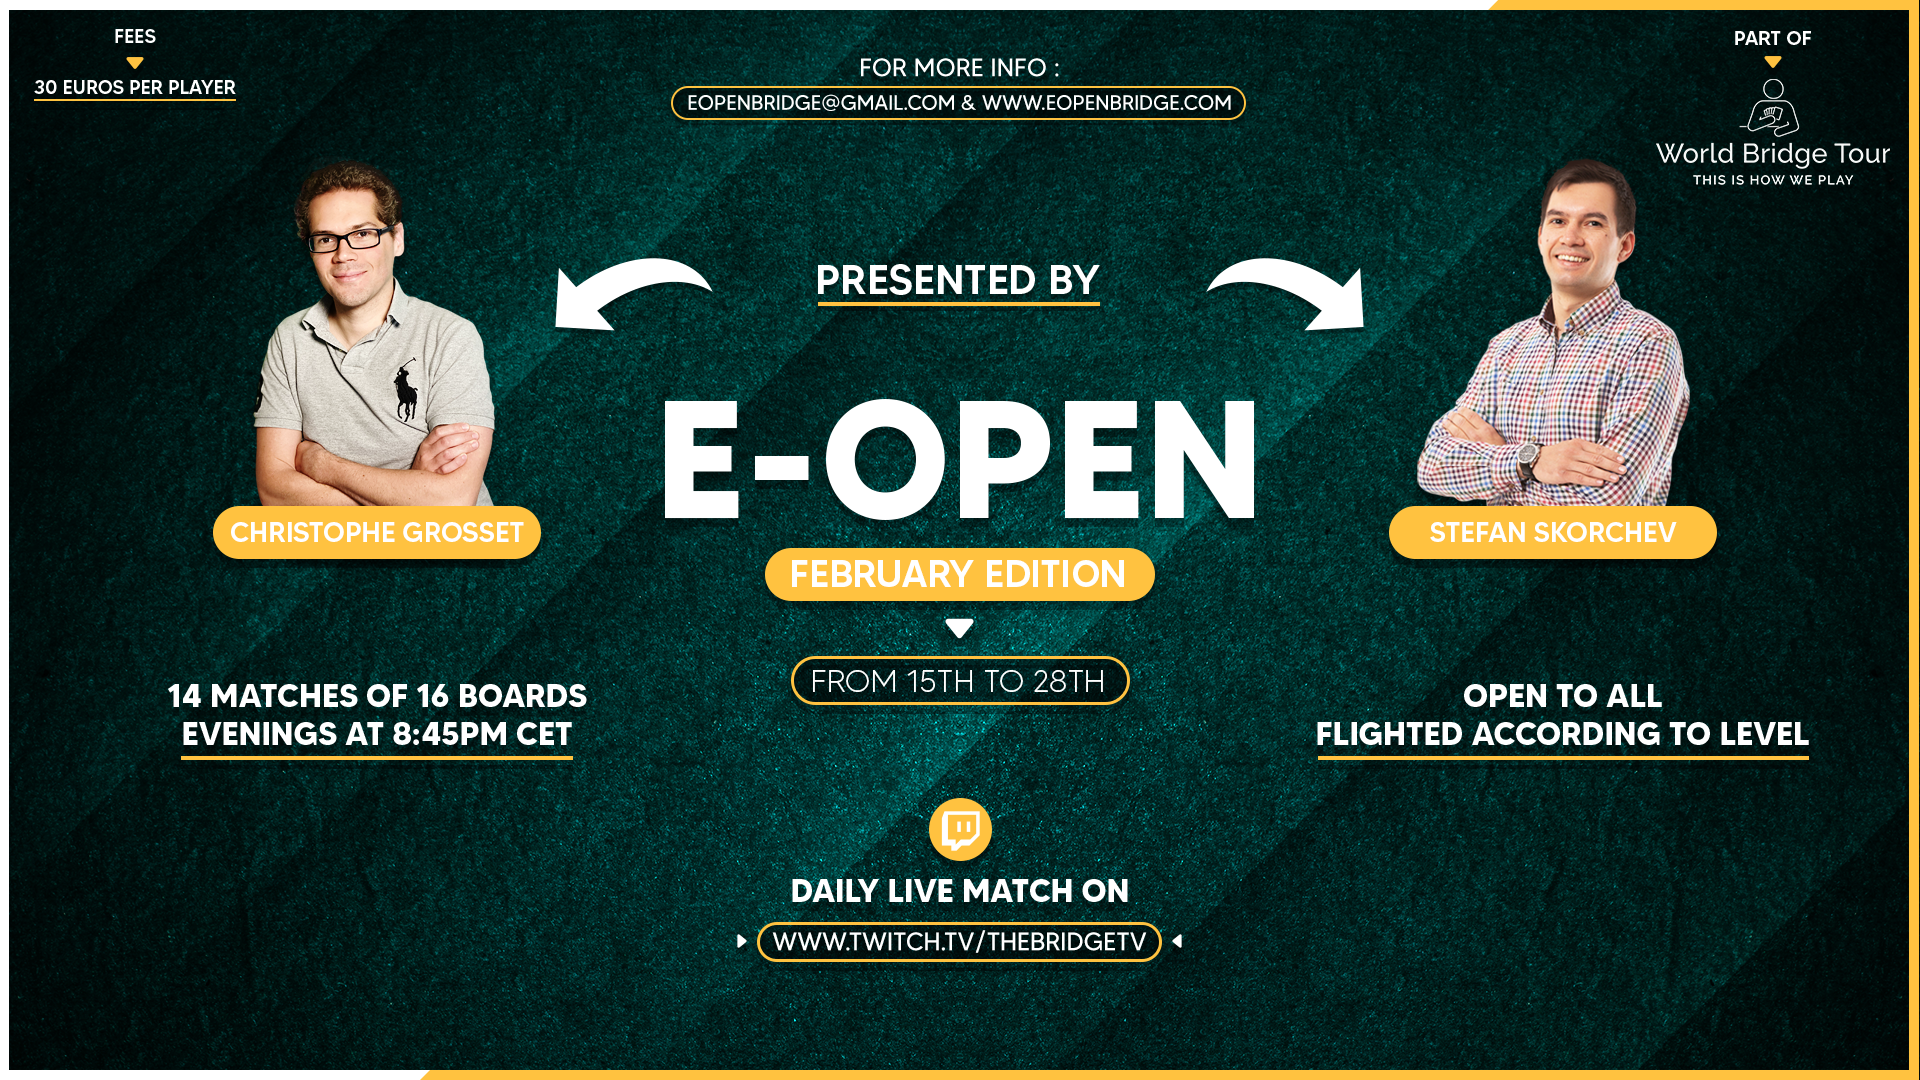 E-open banner image, from 15th to 28th of February. Click here to go to the results website.